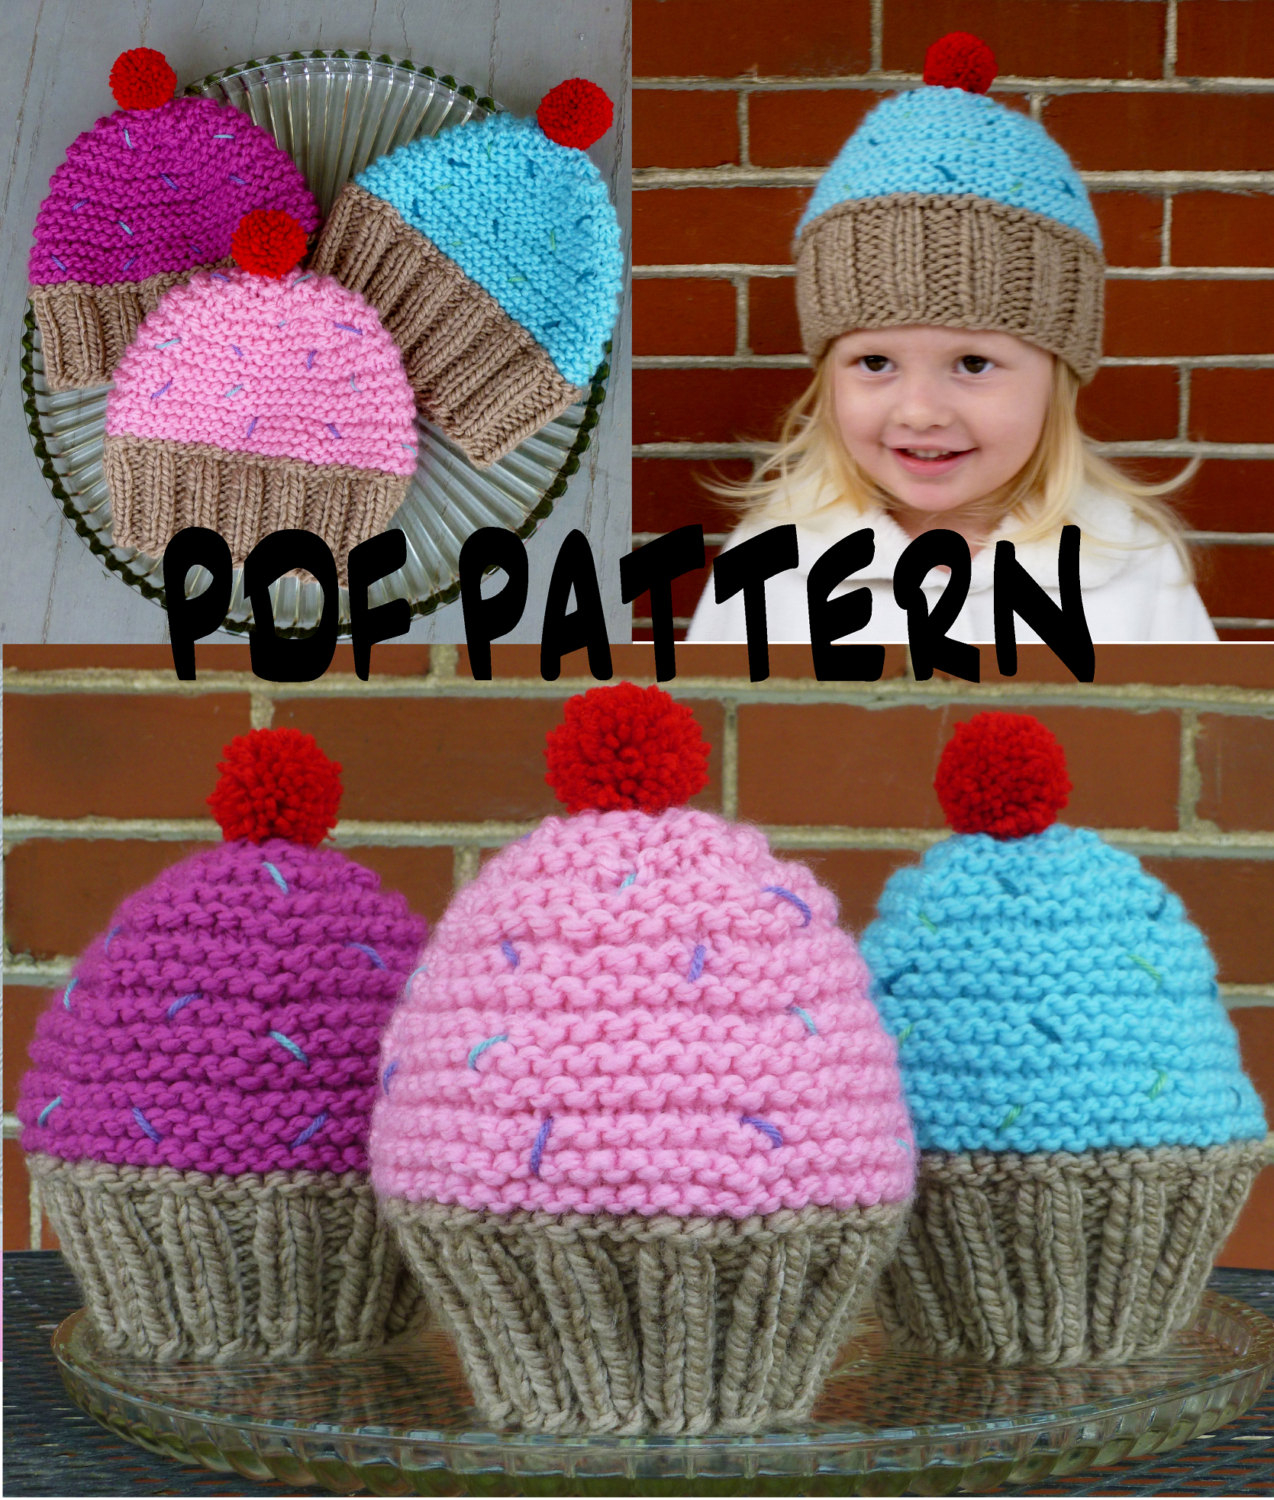 Knitted Cupcake Hat Pattern Instant Download Cupcake Hat Knitting Patternknit Cupcake Hat Patternknit Toddler Hat Patternknit Kids Hat Patternknit Girls Hat Pattern